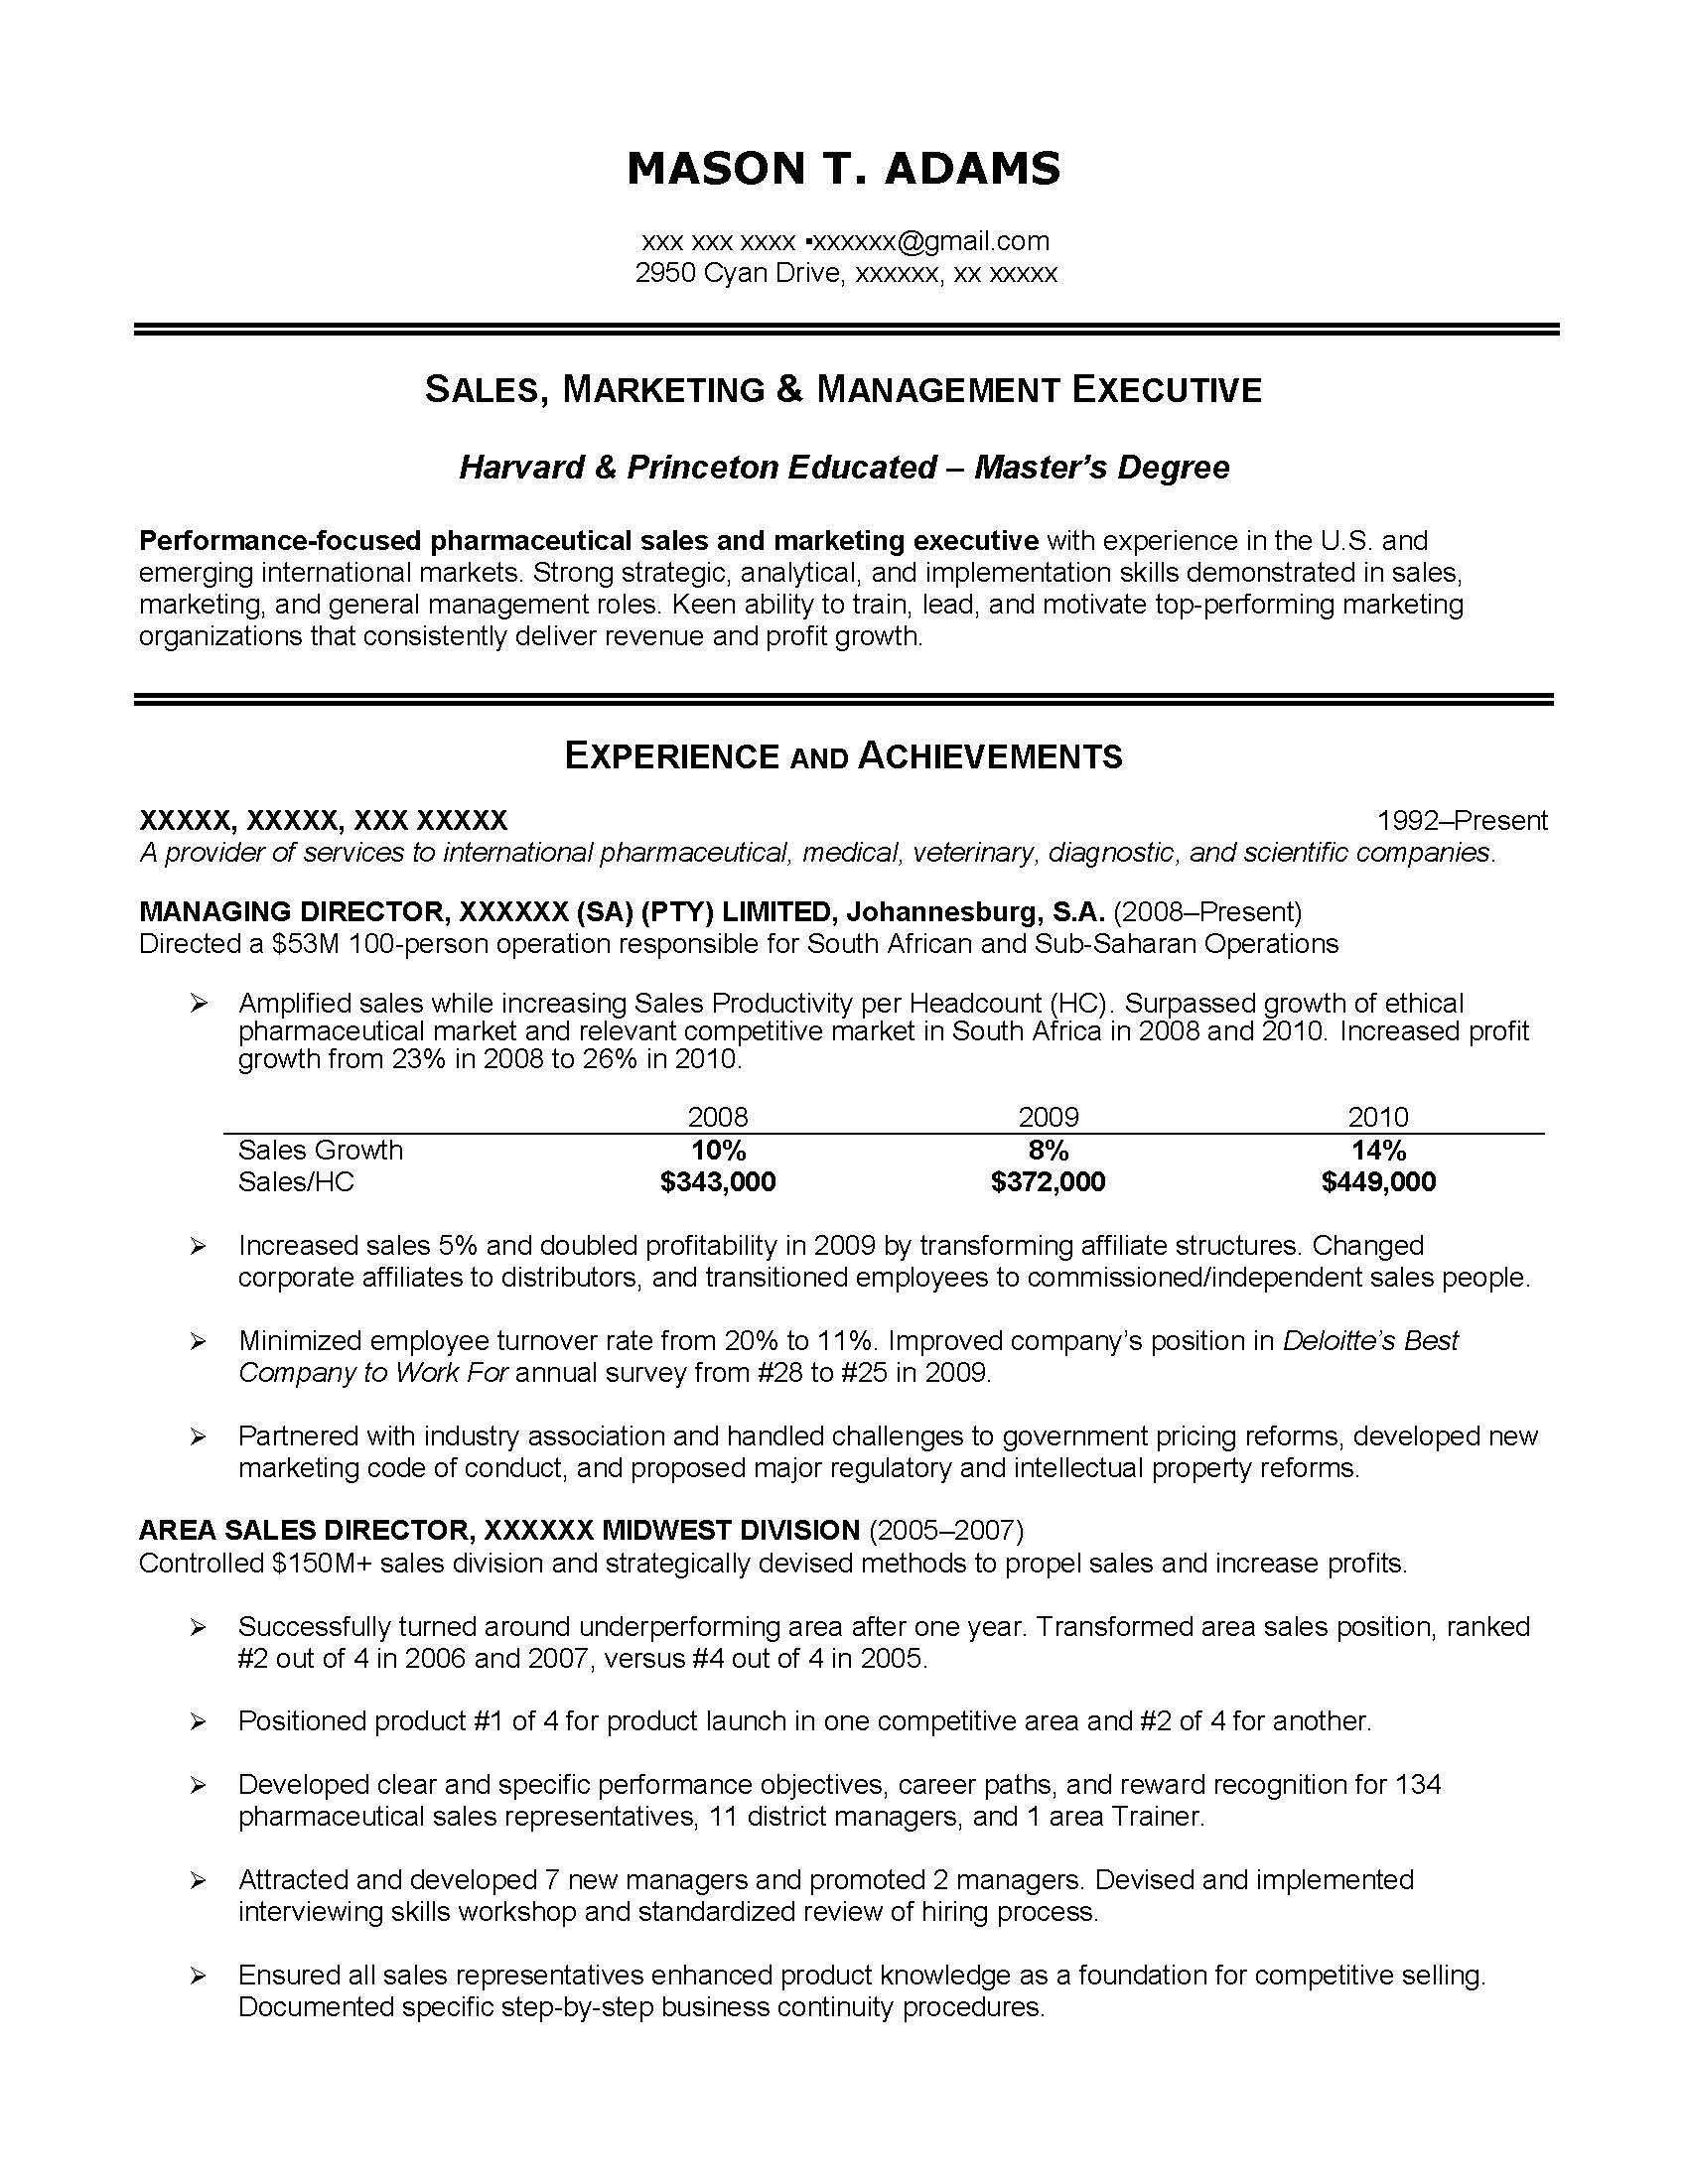 sales resume examples resume real estate sales manager sale associate resume examples objective for sales